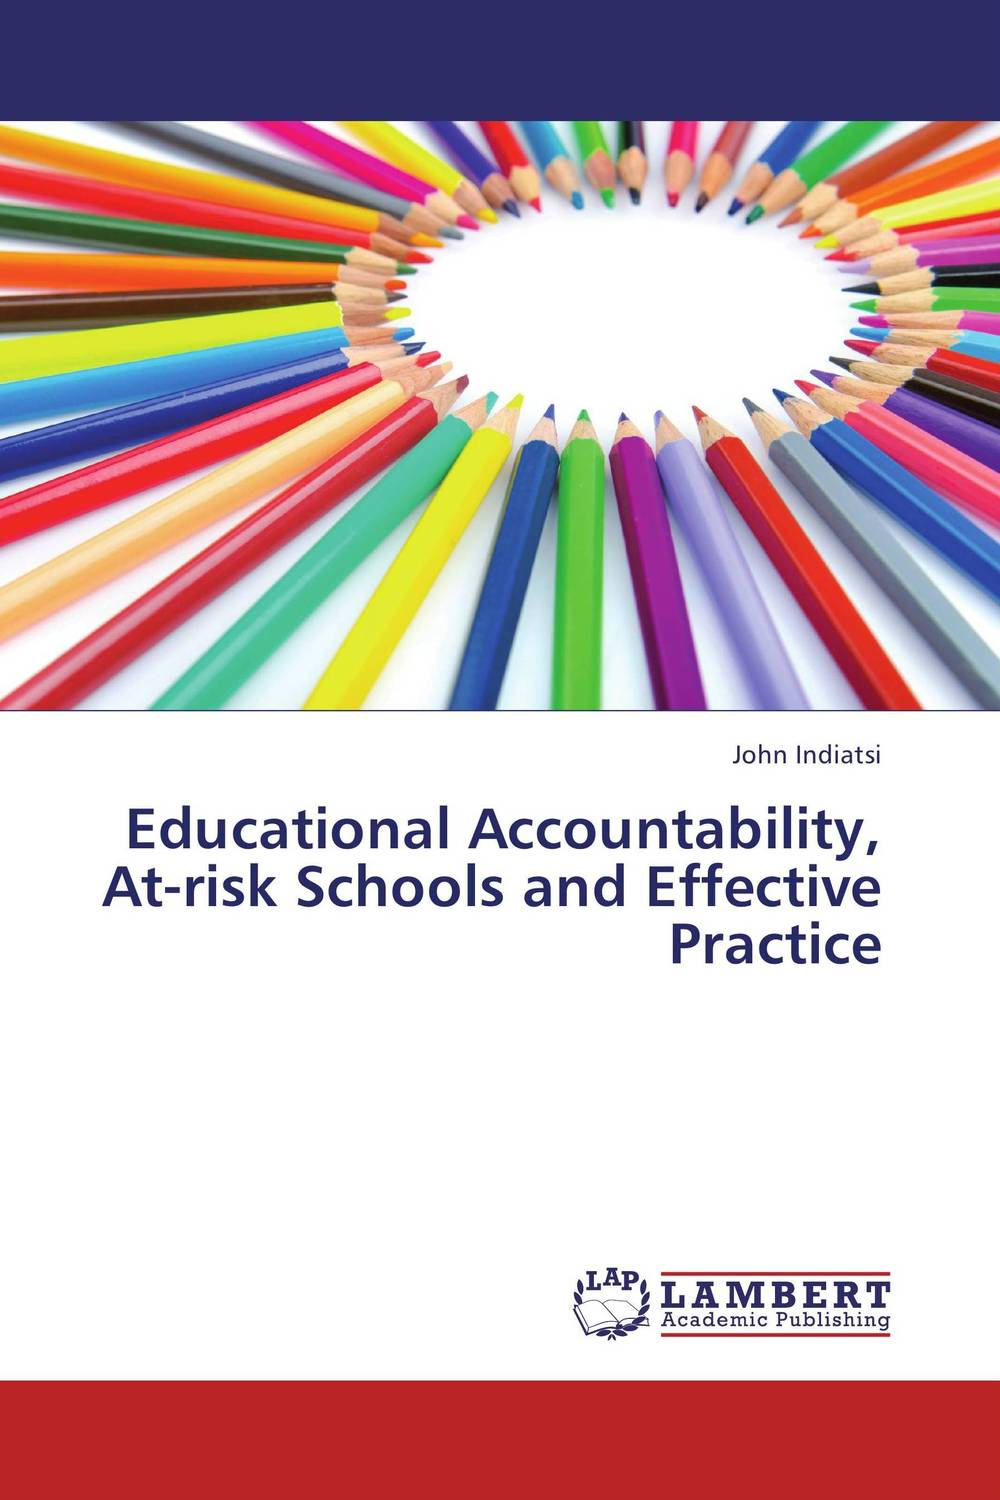 Educational Accountability, At-risk Schools and Effective Practice michael rees business risk and simulation modelling in practice using excel vba and risk